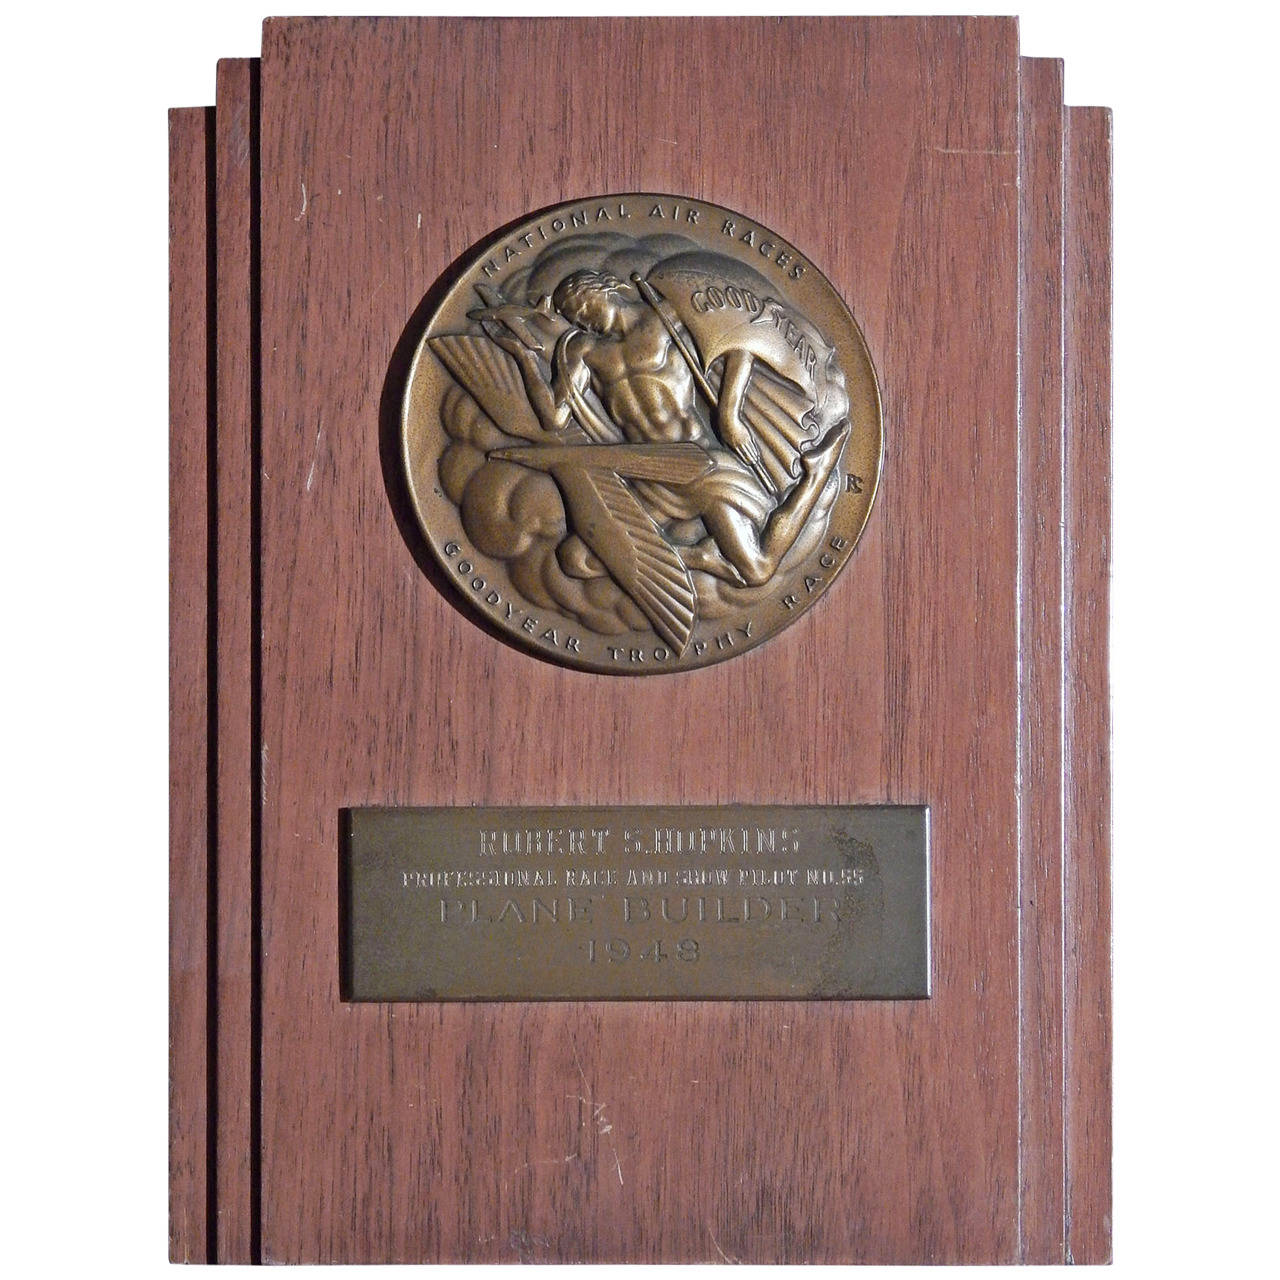 Goodyear Trophy Race Plaque, National Air Races, 1948, with Chambellan Medal